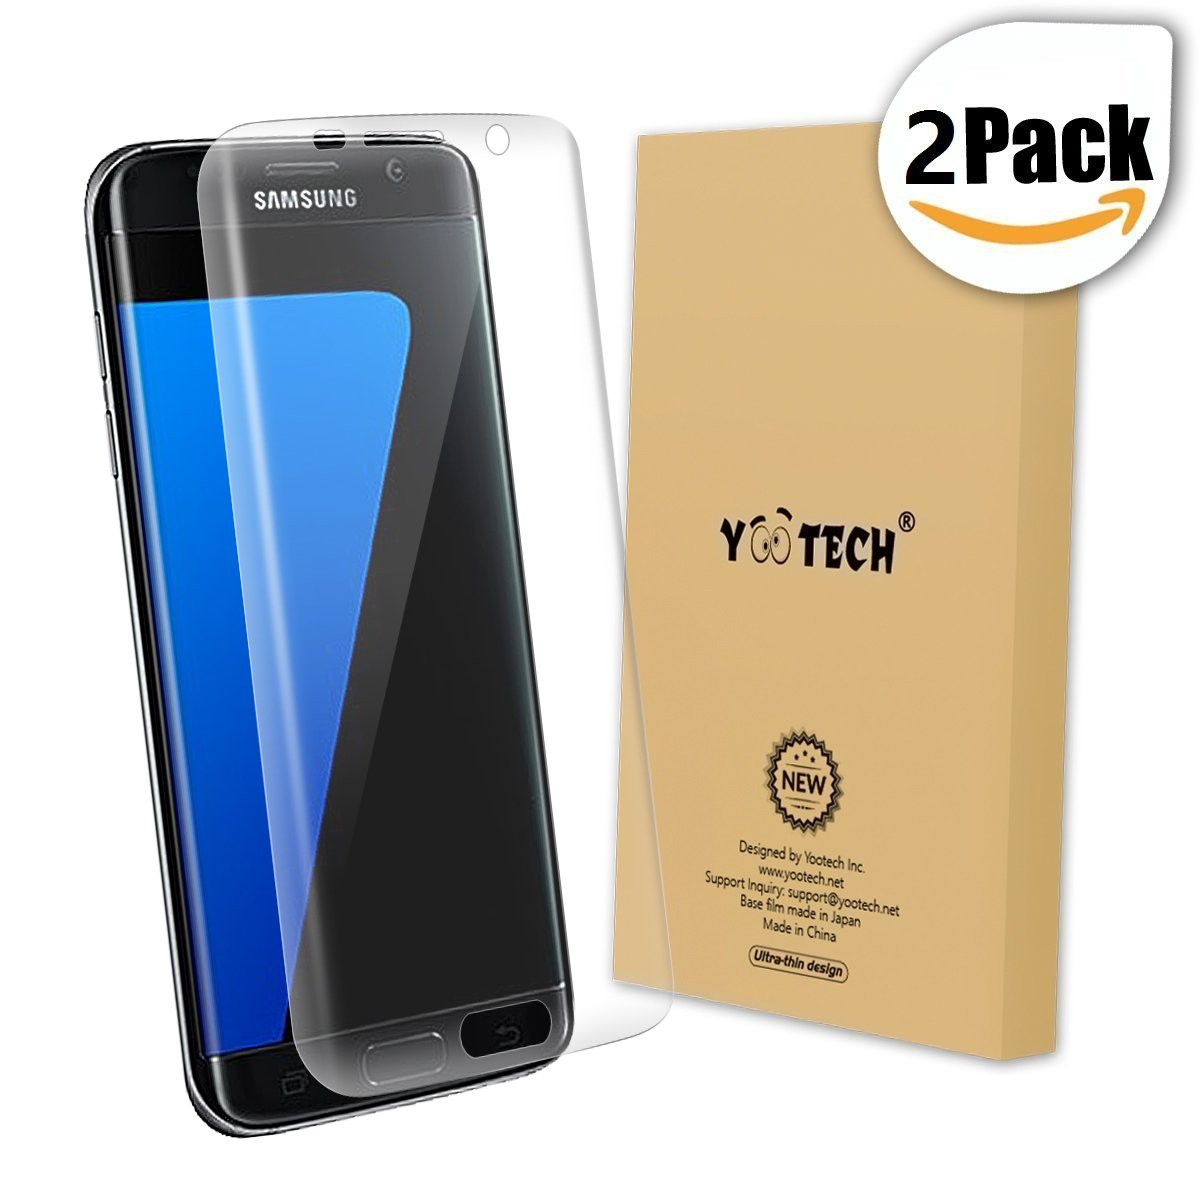 Galaxy S7 Edge Screen Protector (Full Coverage) ,Yootech (2-Pack) (Anti-Bubble) (HD Clear) Curved Edge to Edge Screen Protector for Samsung Galaxy S7 Edge,Lifetime Warranty